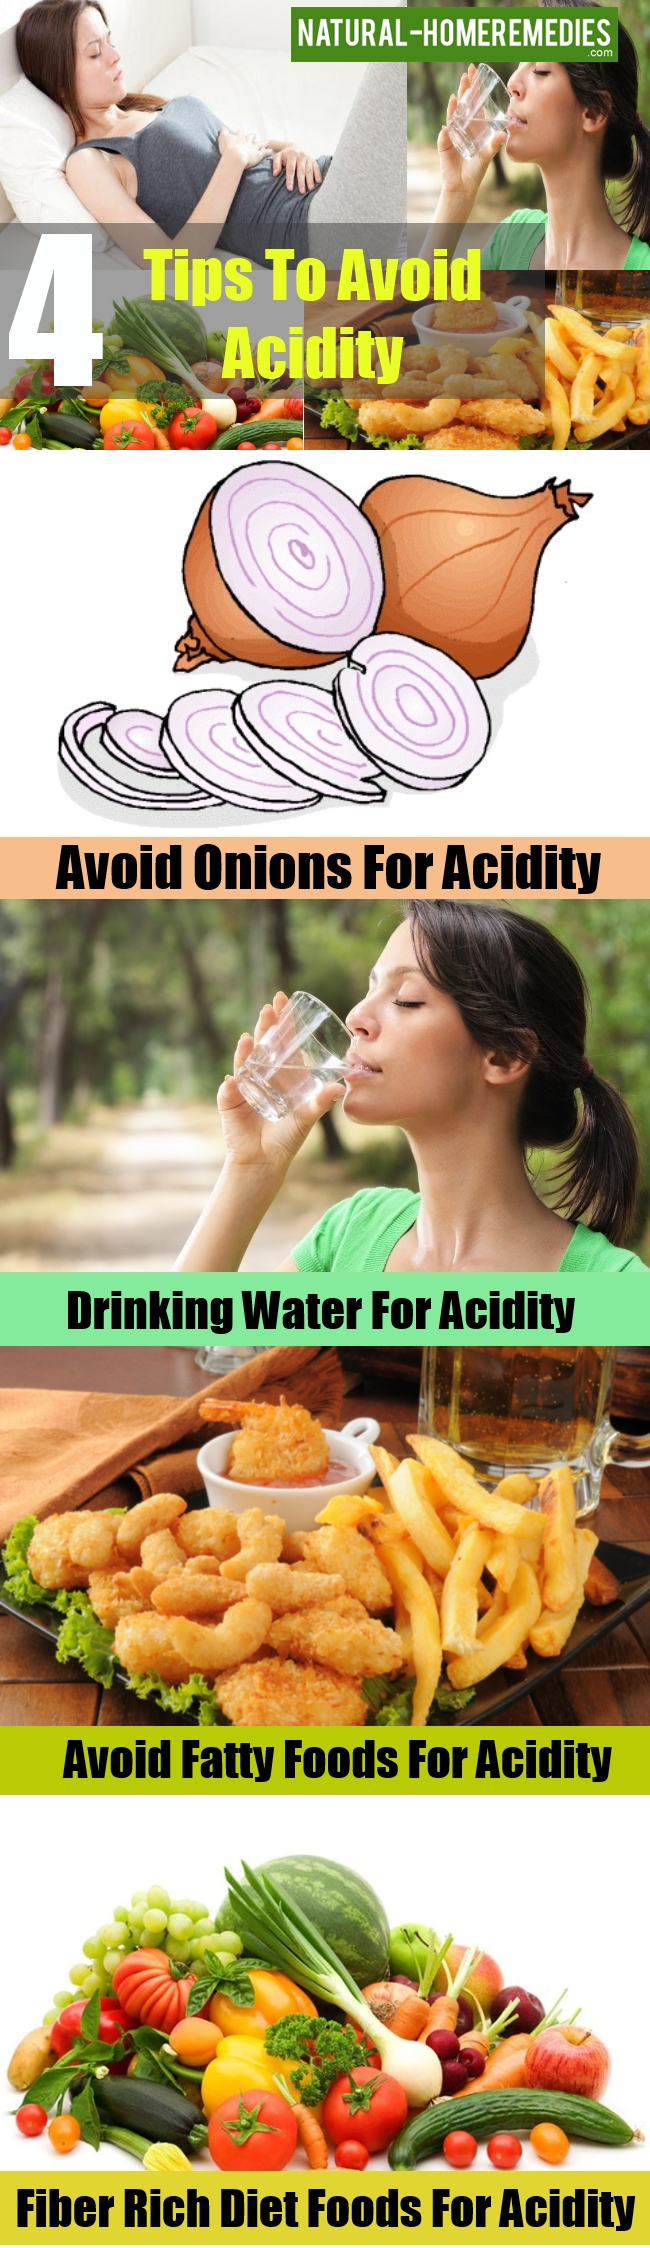 Tips To Avoid Acidity